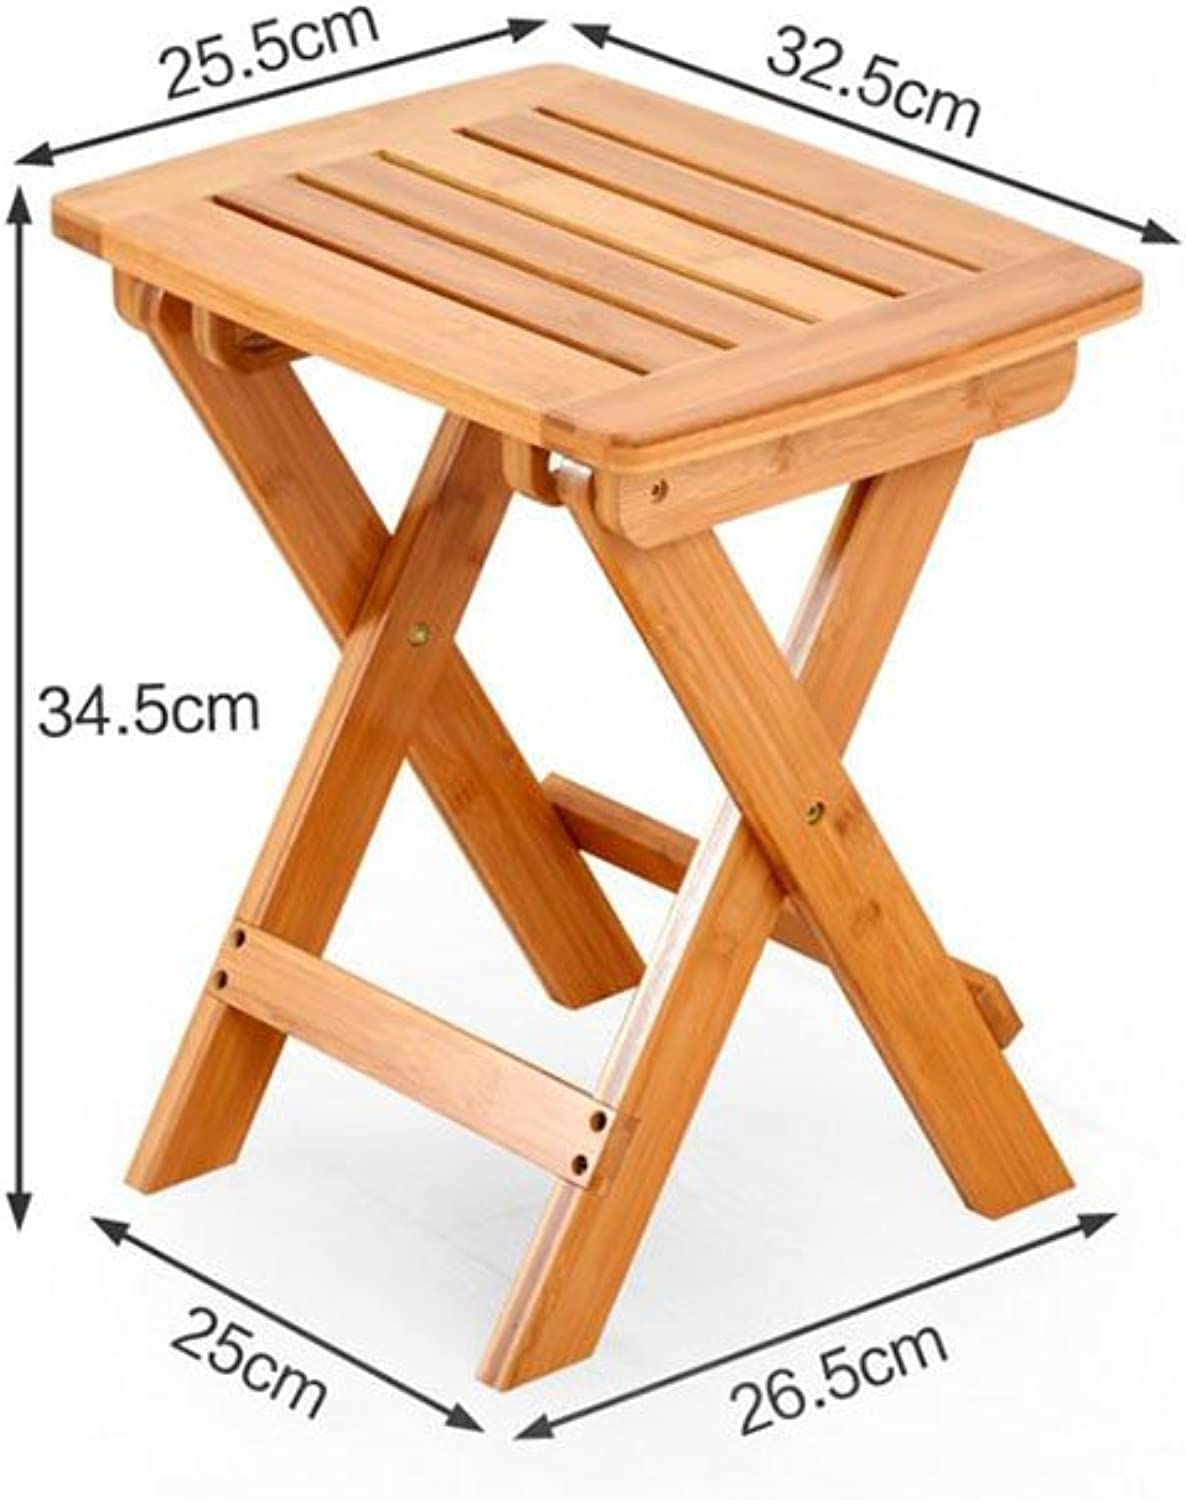 CJC Wooden Stool Dining Chair Computer Chair Collapsible Medium Size Home Office Furniture Kitchen (color   2)